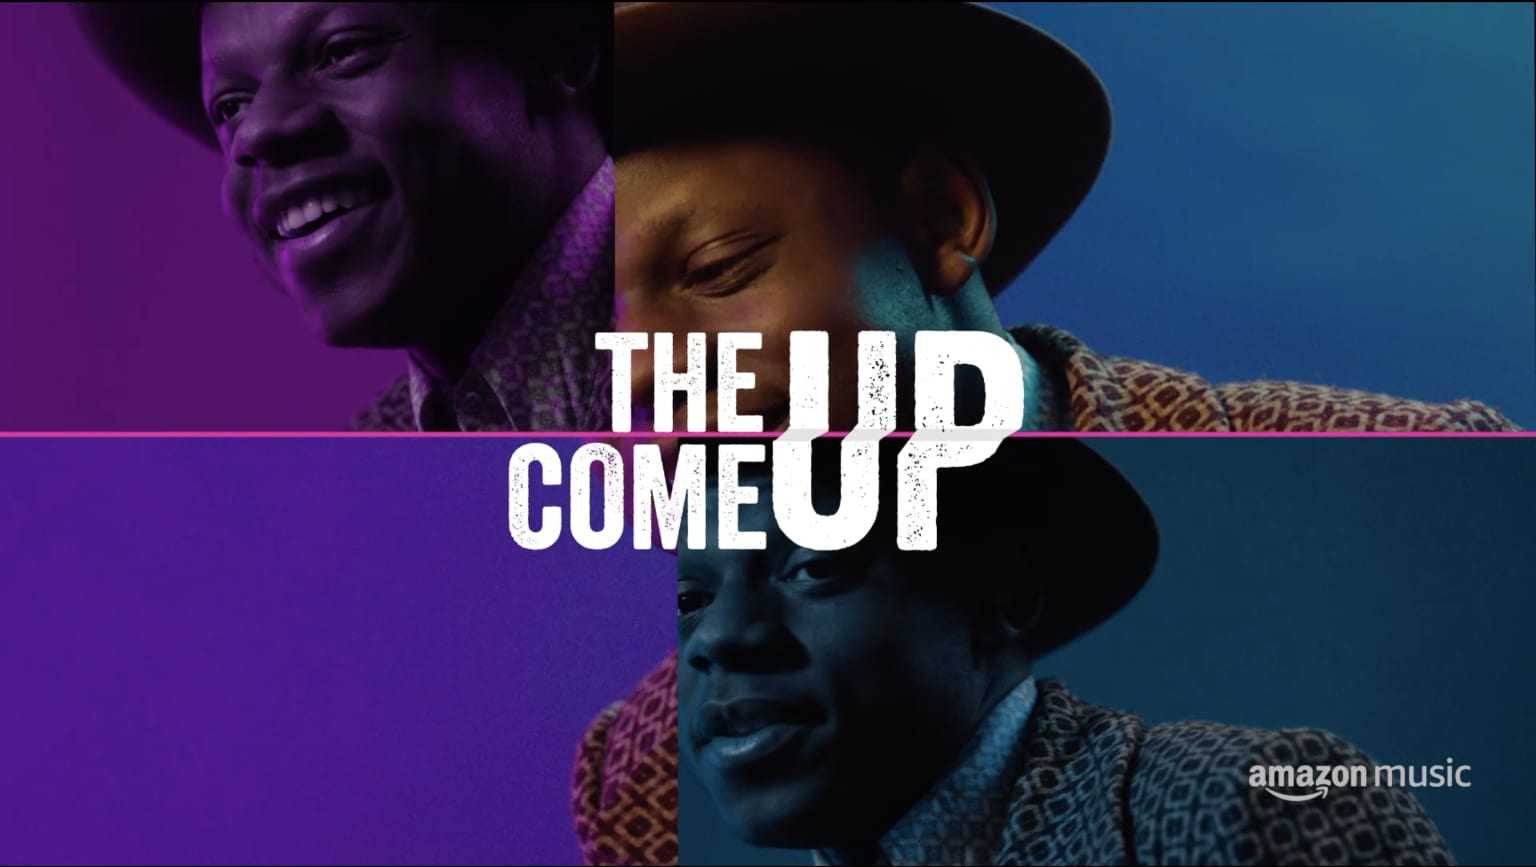 Amazon Music - The Come Up